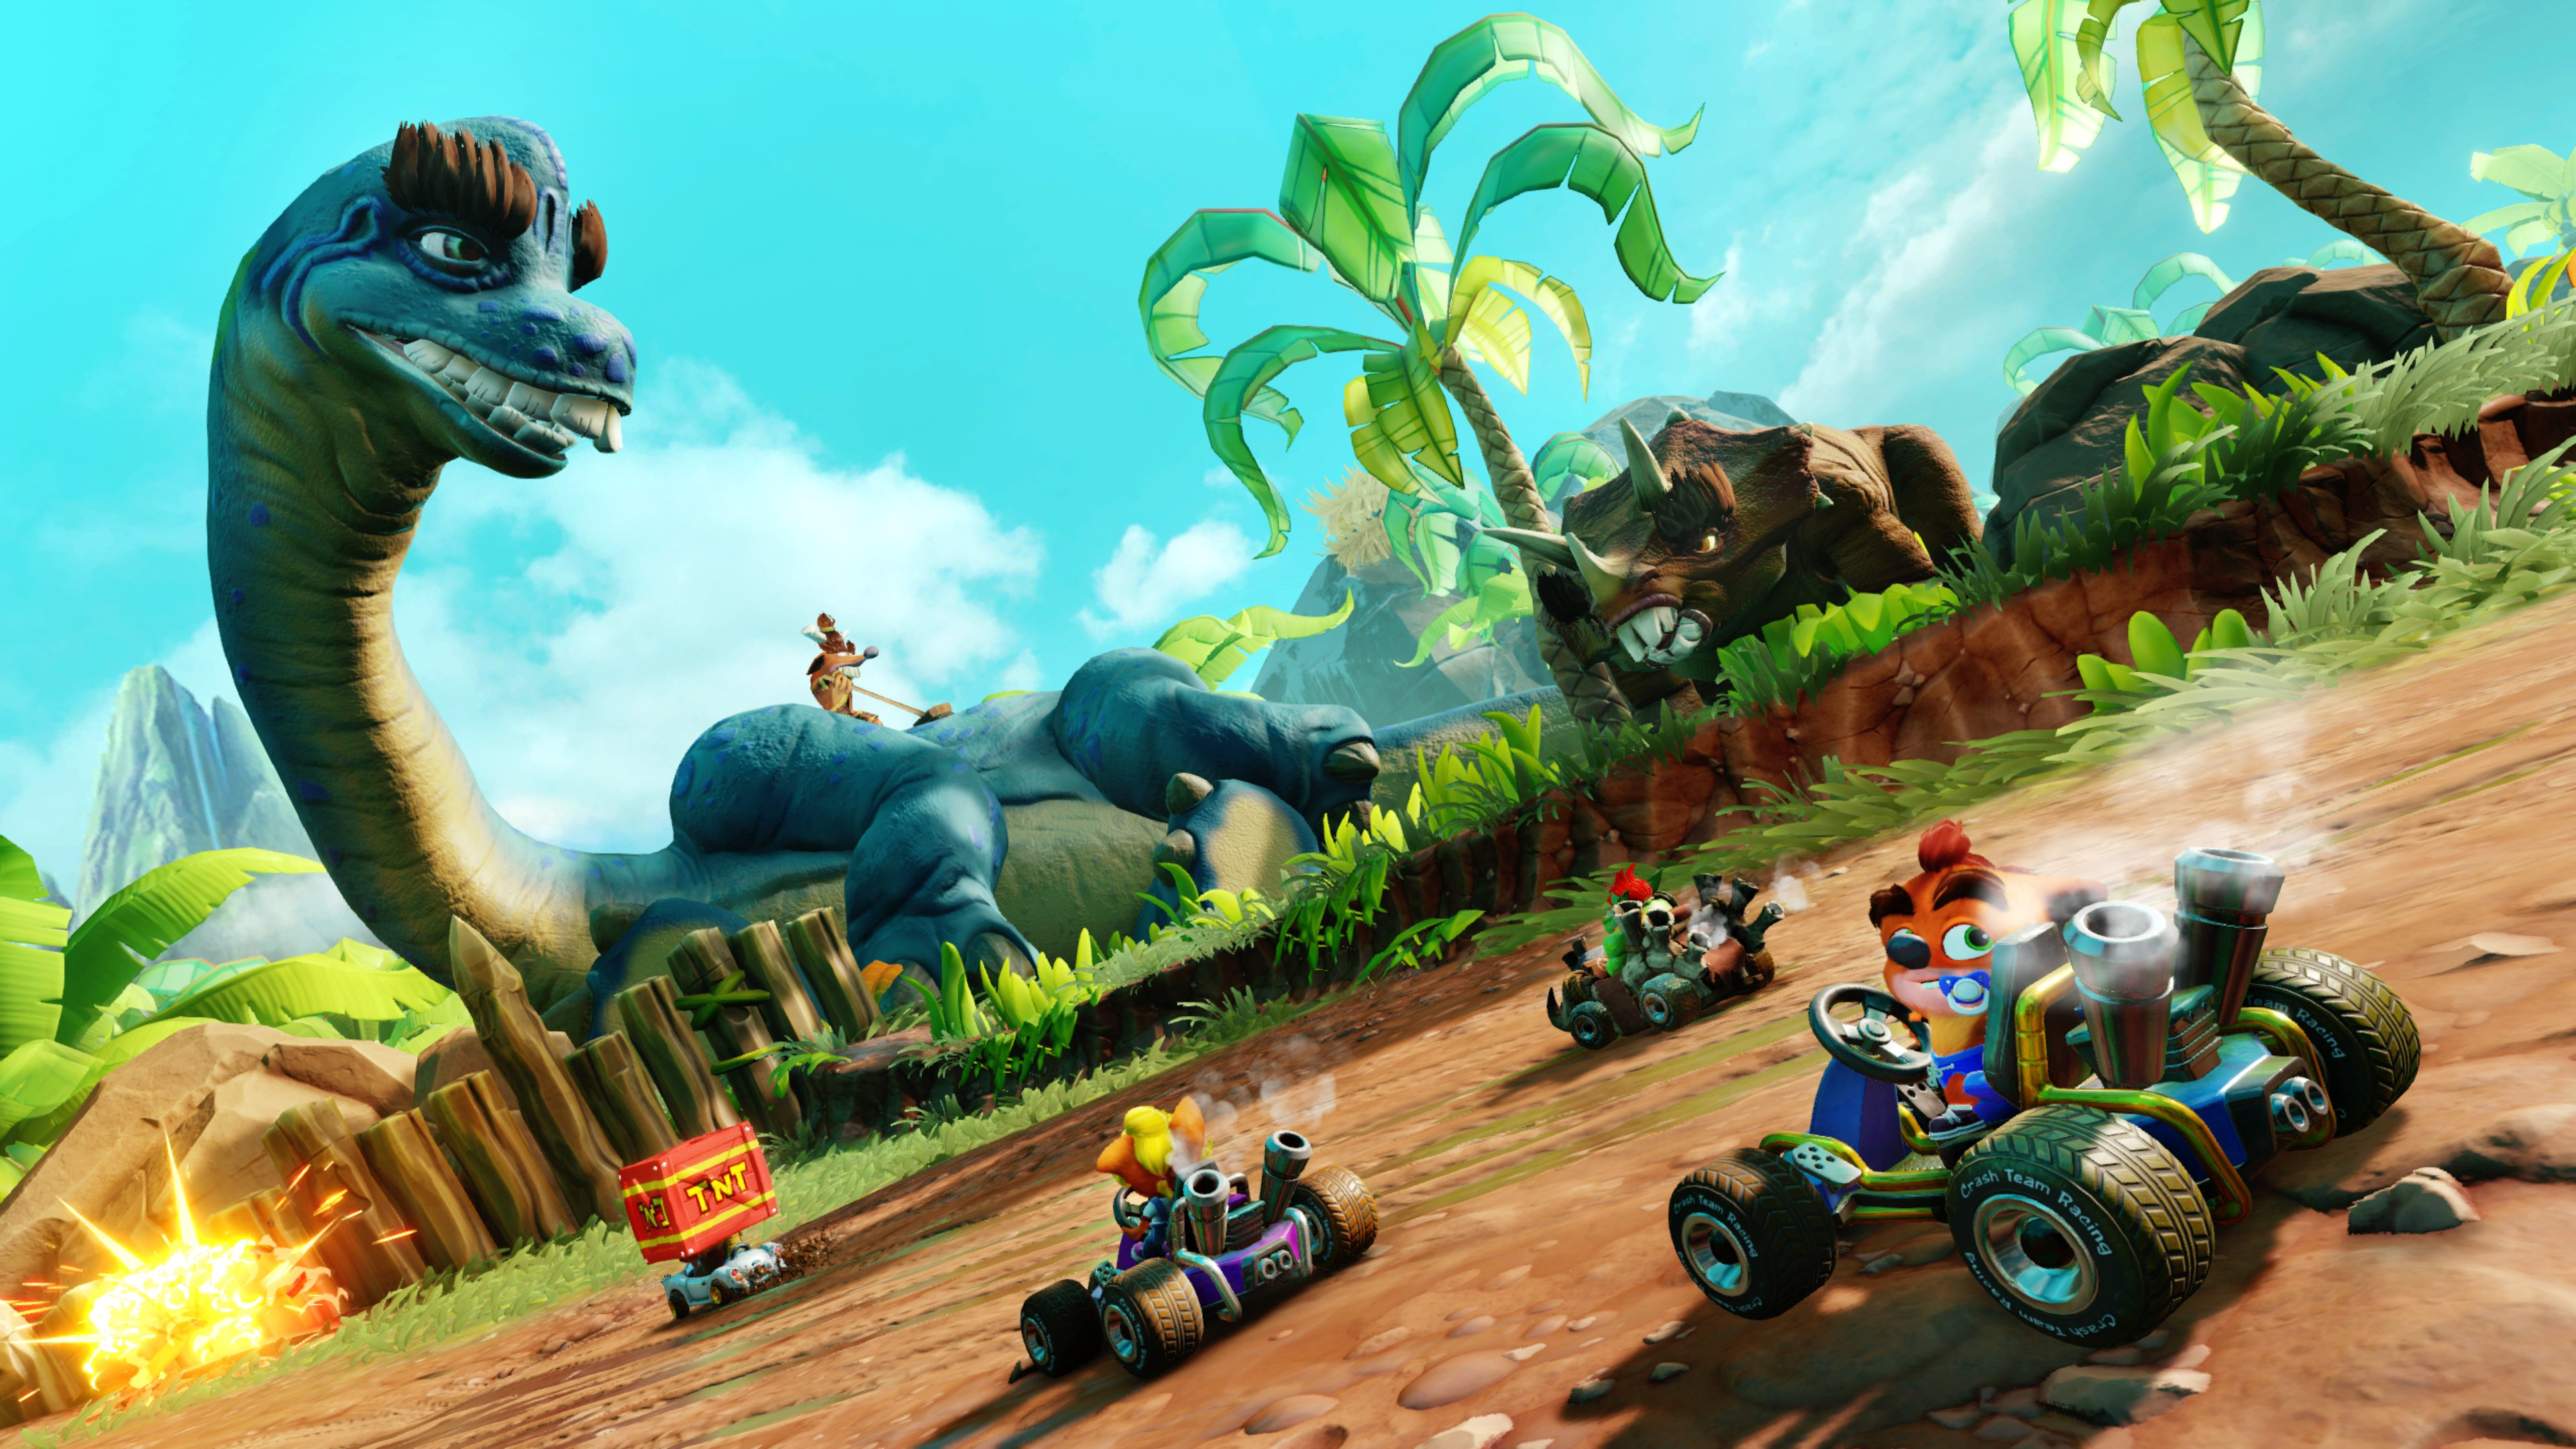 A dinosaur on the track in Crash Bandicoot